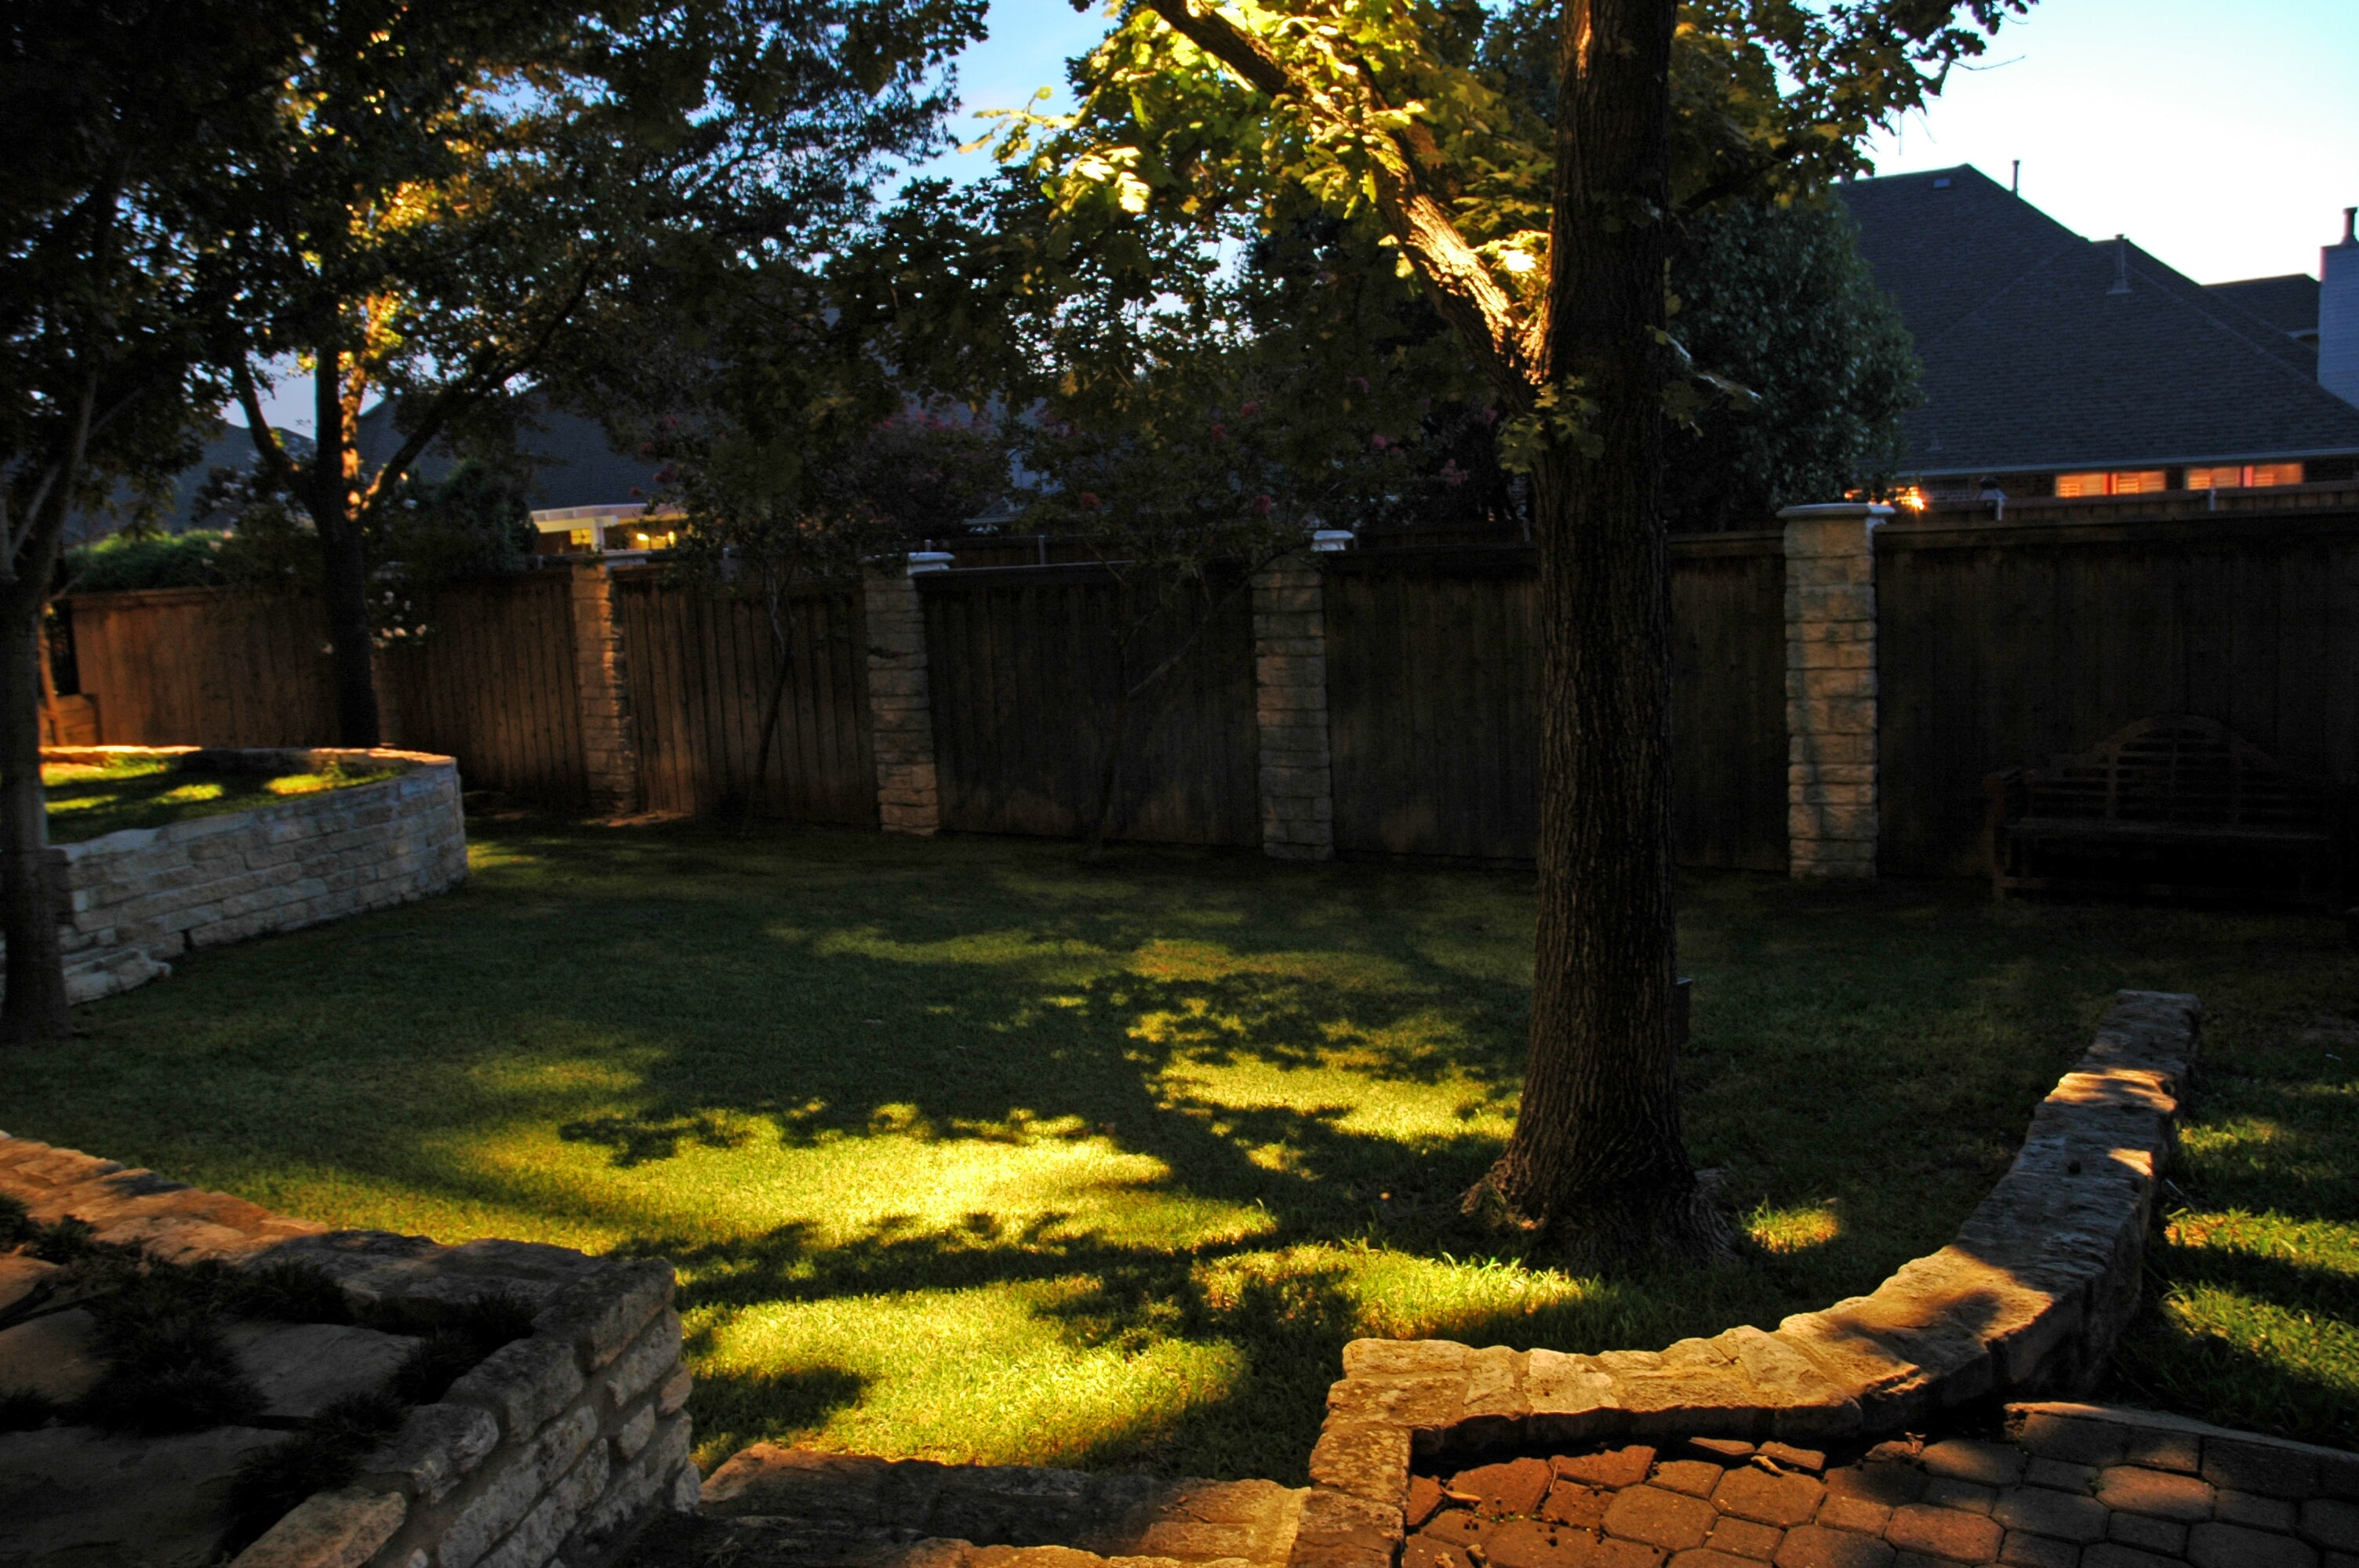 5 Reasons That Make Low Voltage Outdoor Lighting In Olive Branch